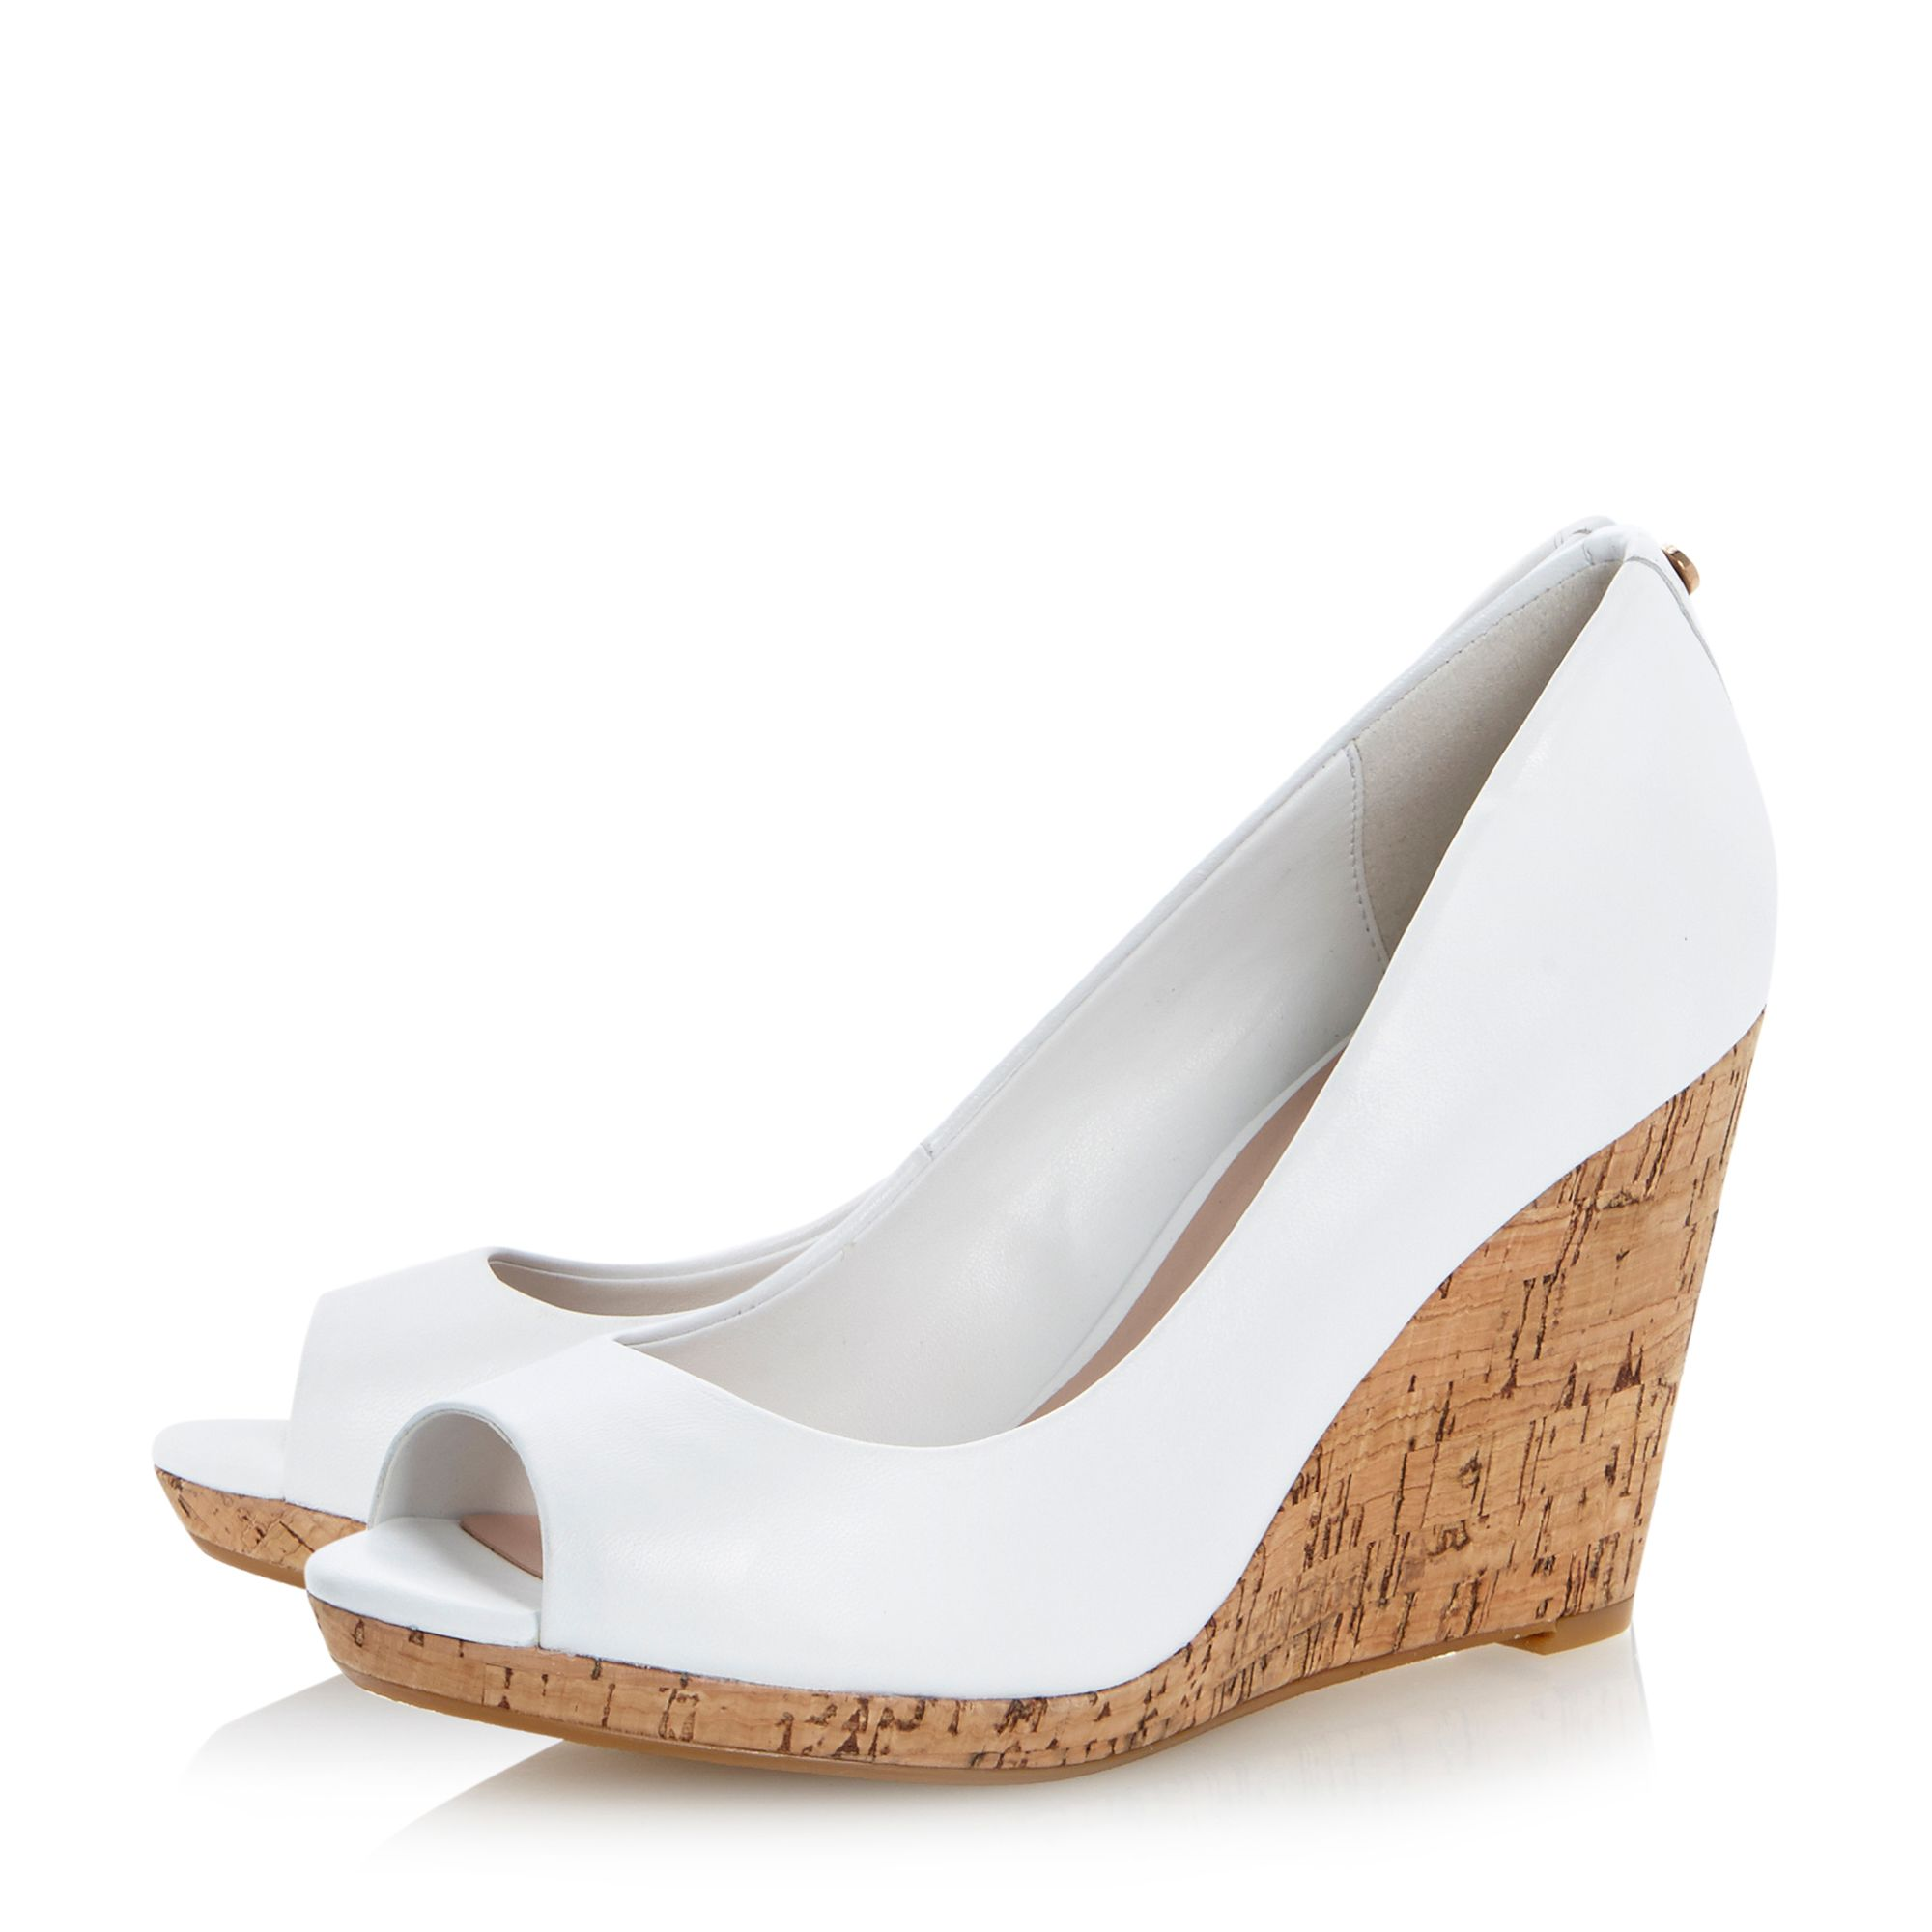 Celia peeptoe wedge court shoes